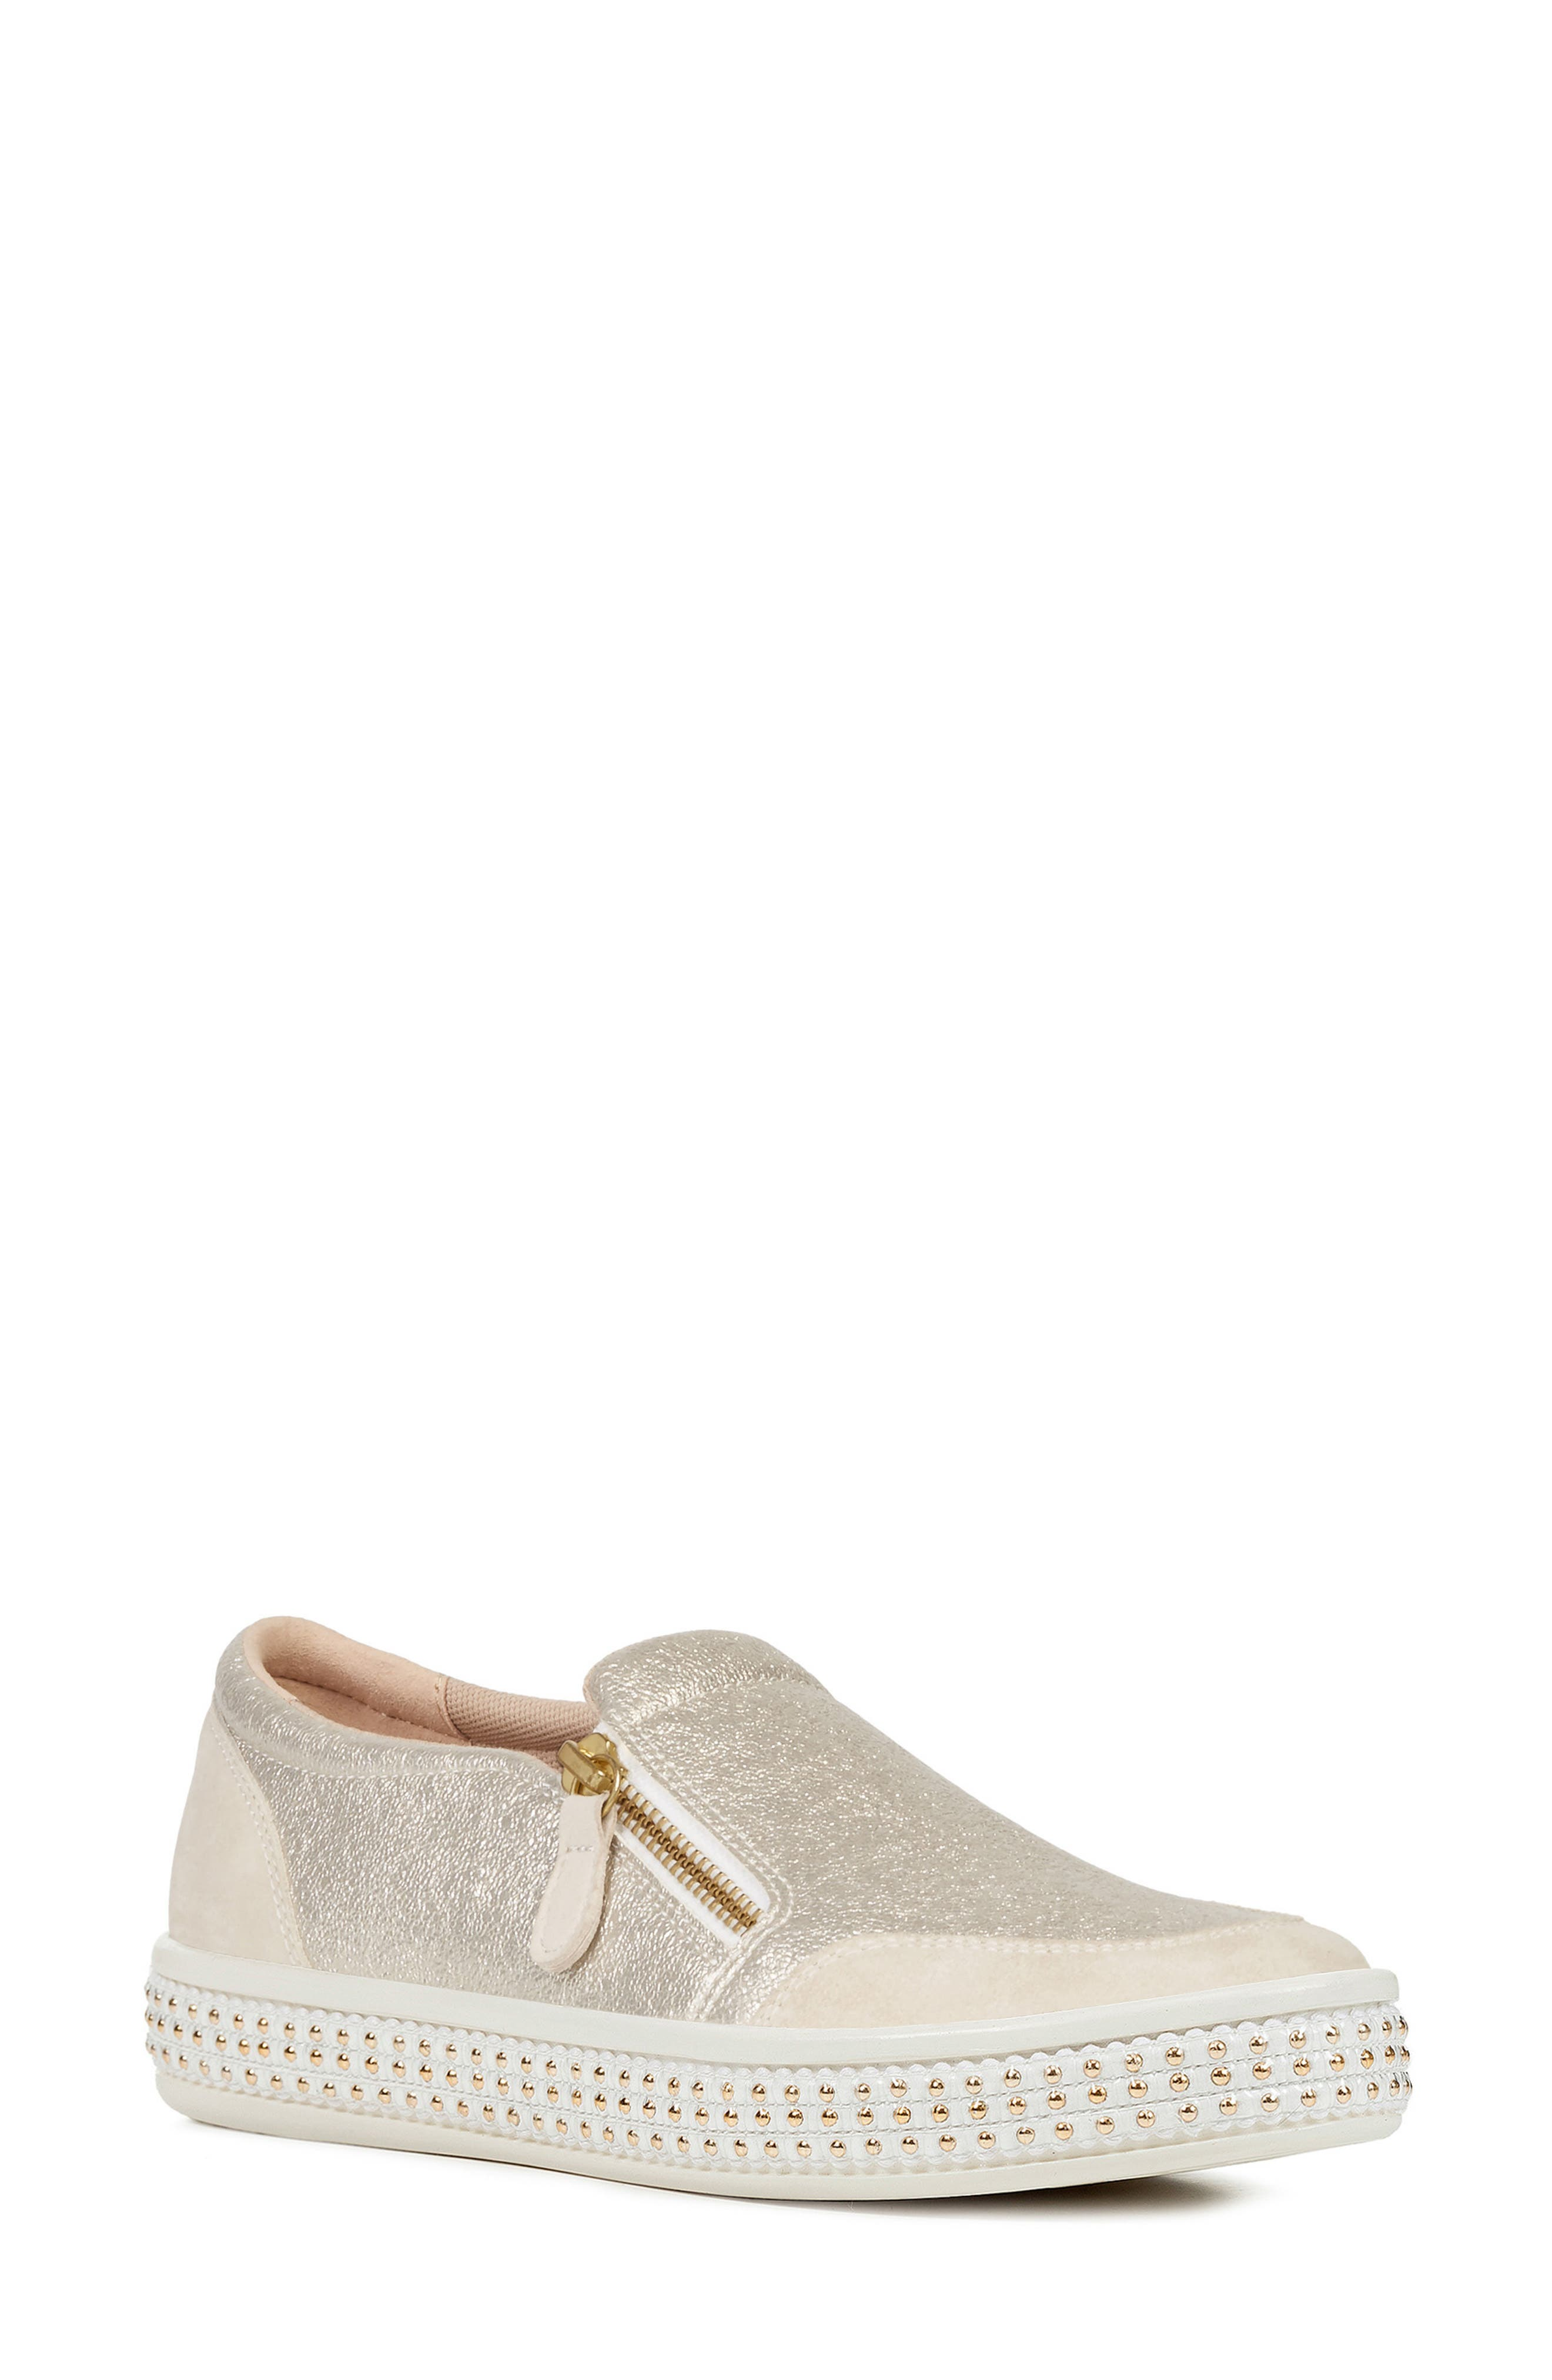 Geox Geox W NEW CLUB 13 (Light Gold) Women's Slip on Shoes from 6pm | Shop